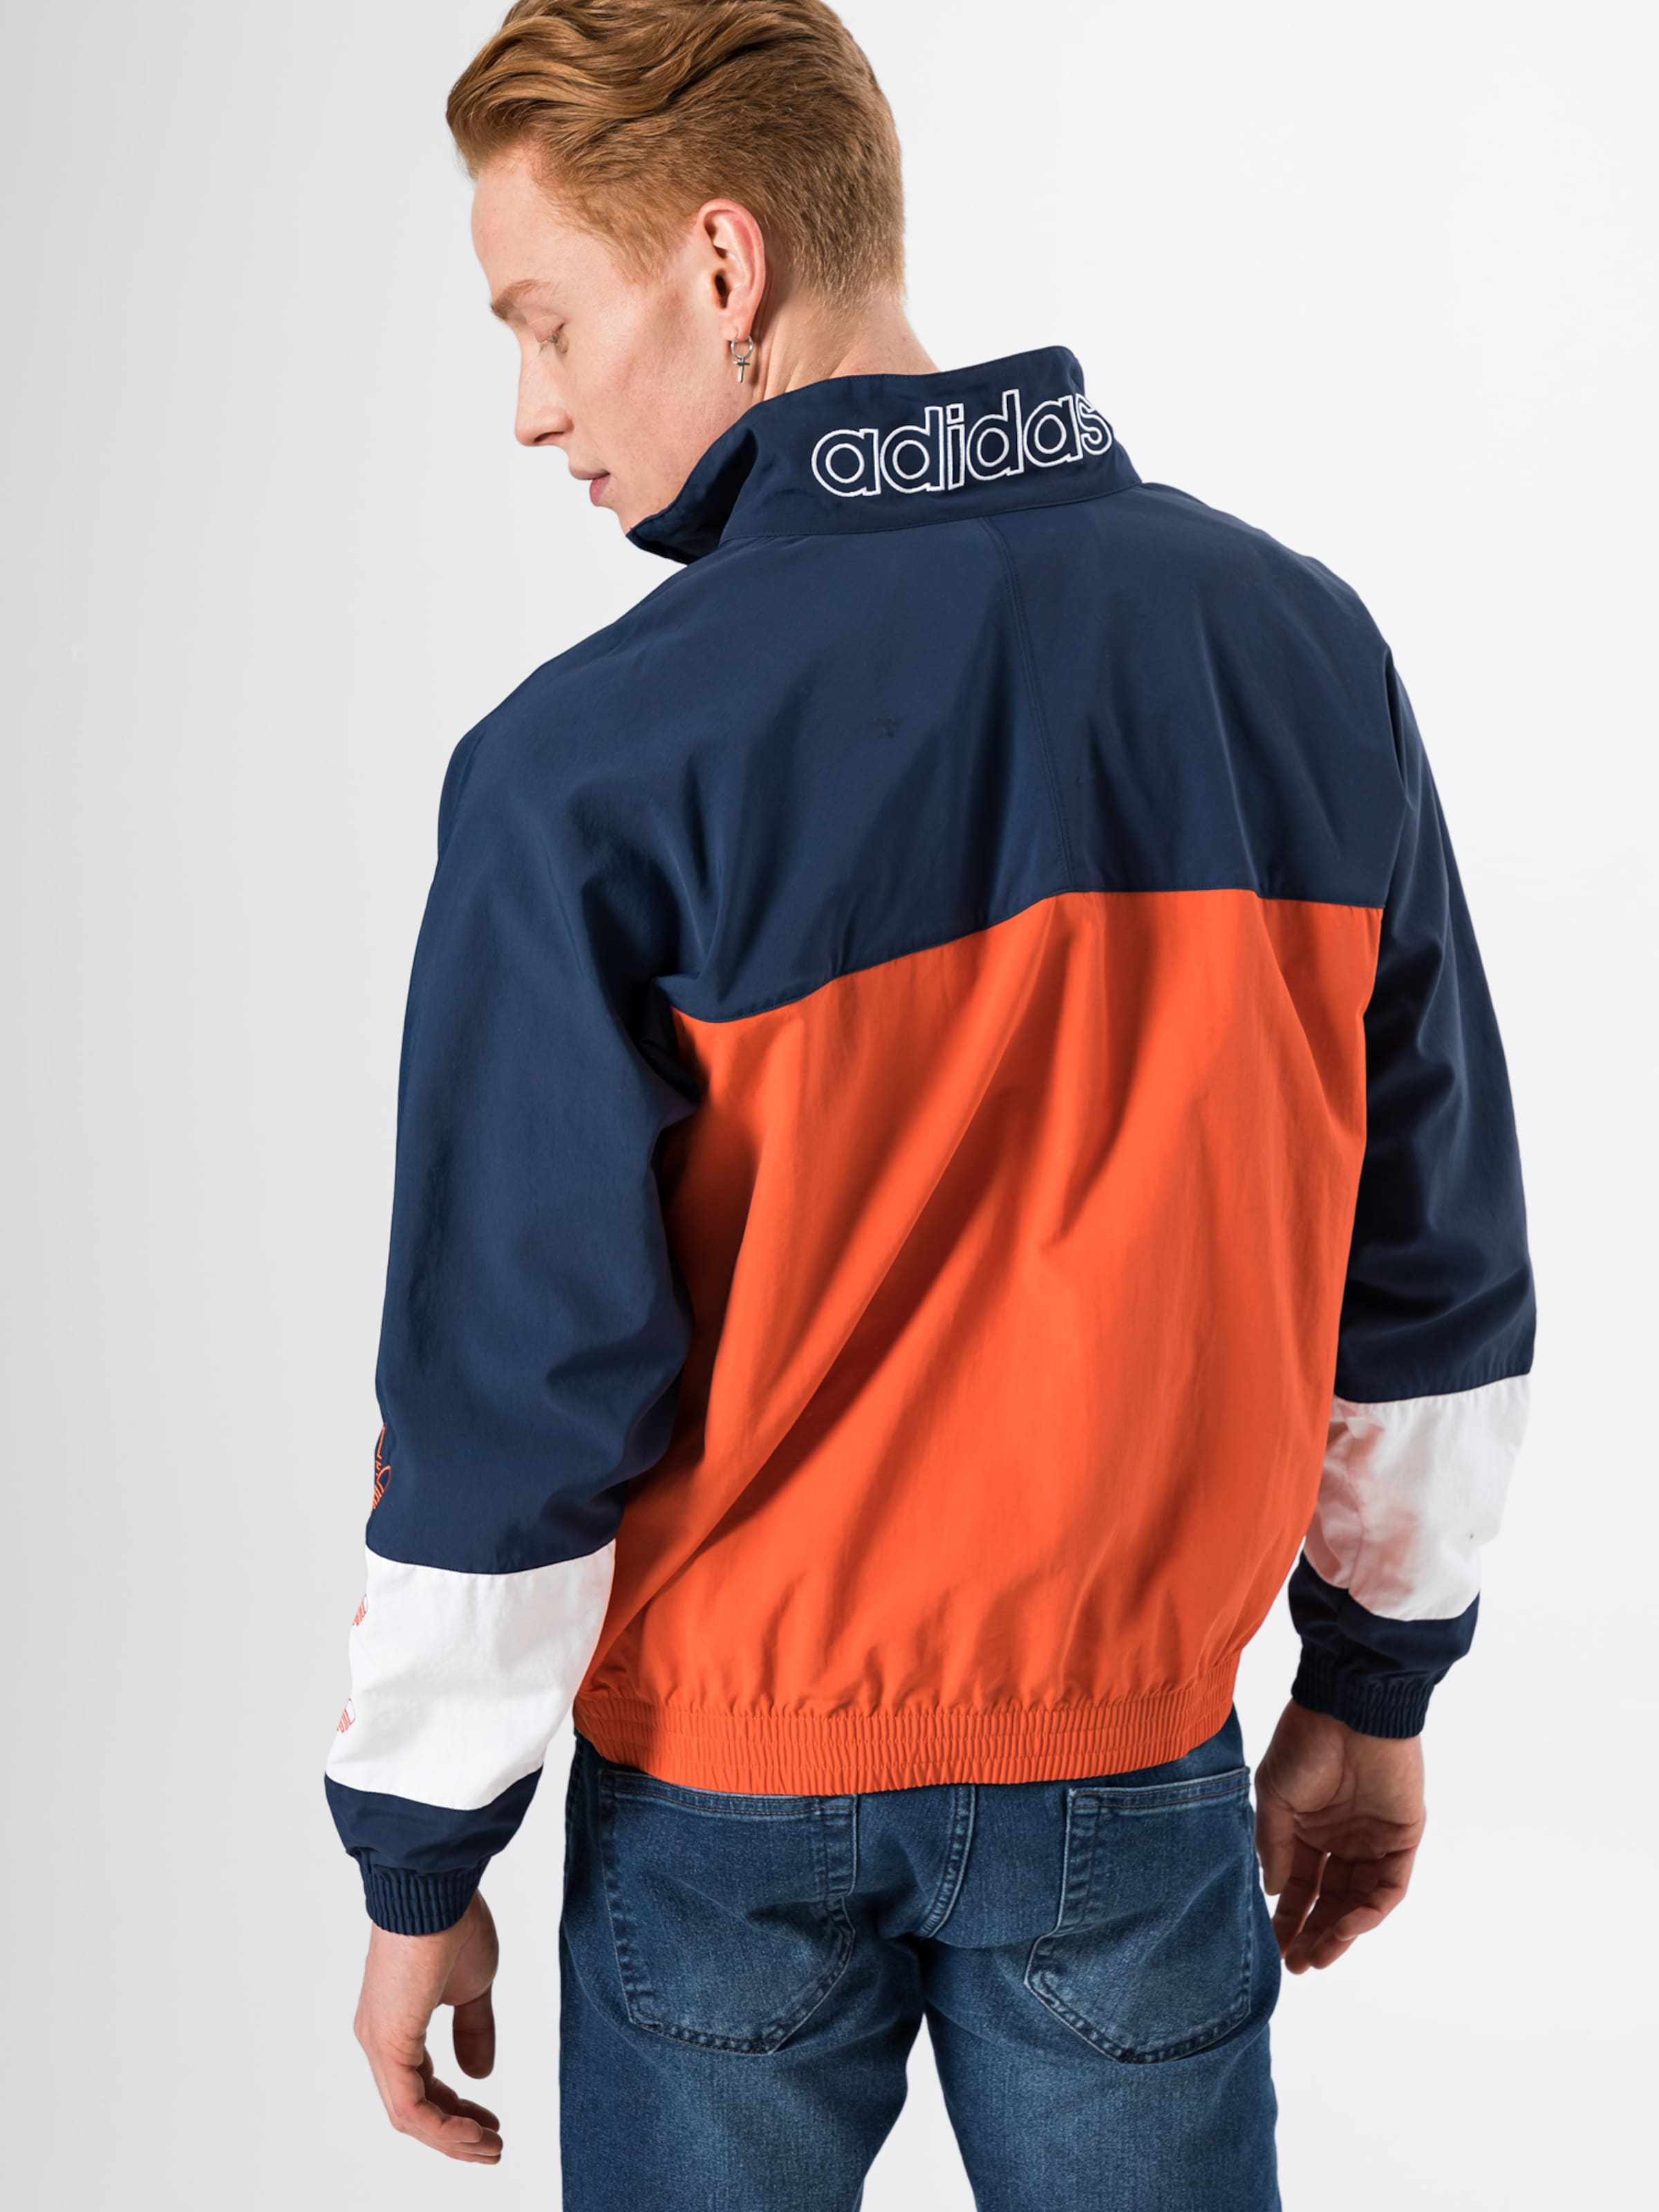 Originals Adidas 'blocked DunkelblauOrange Up' In Warm Jacke QCdtshr